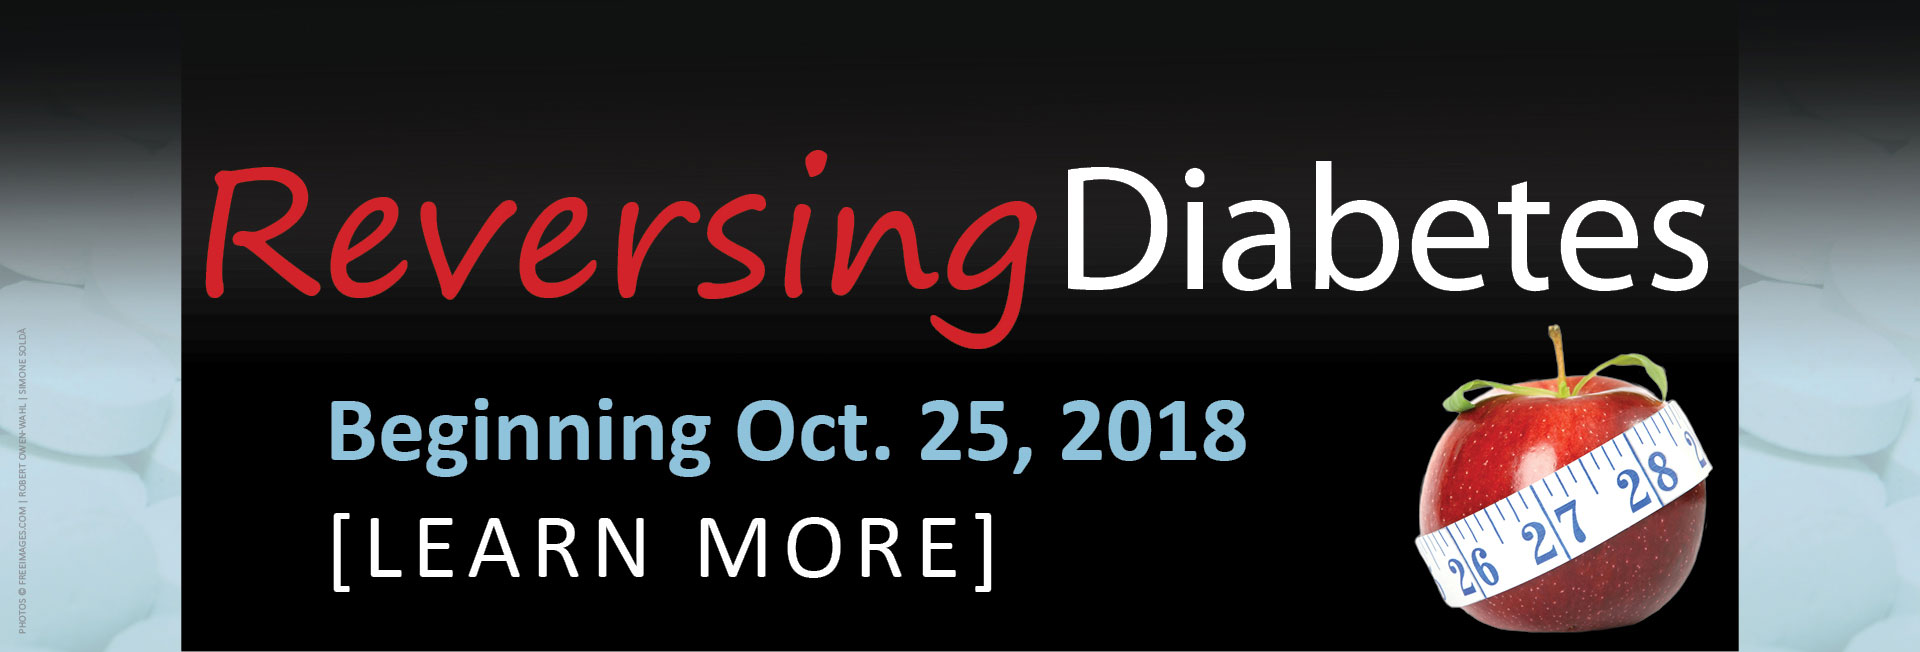 Reversing Diabetes - 6 Sessions - Begins October 25 at 6:30pm